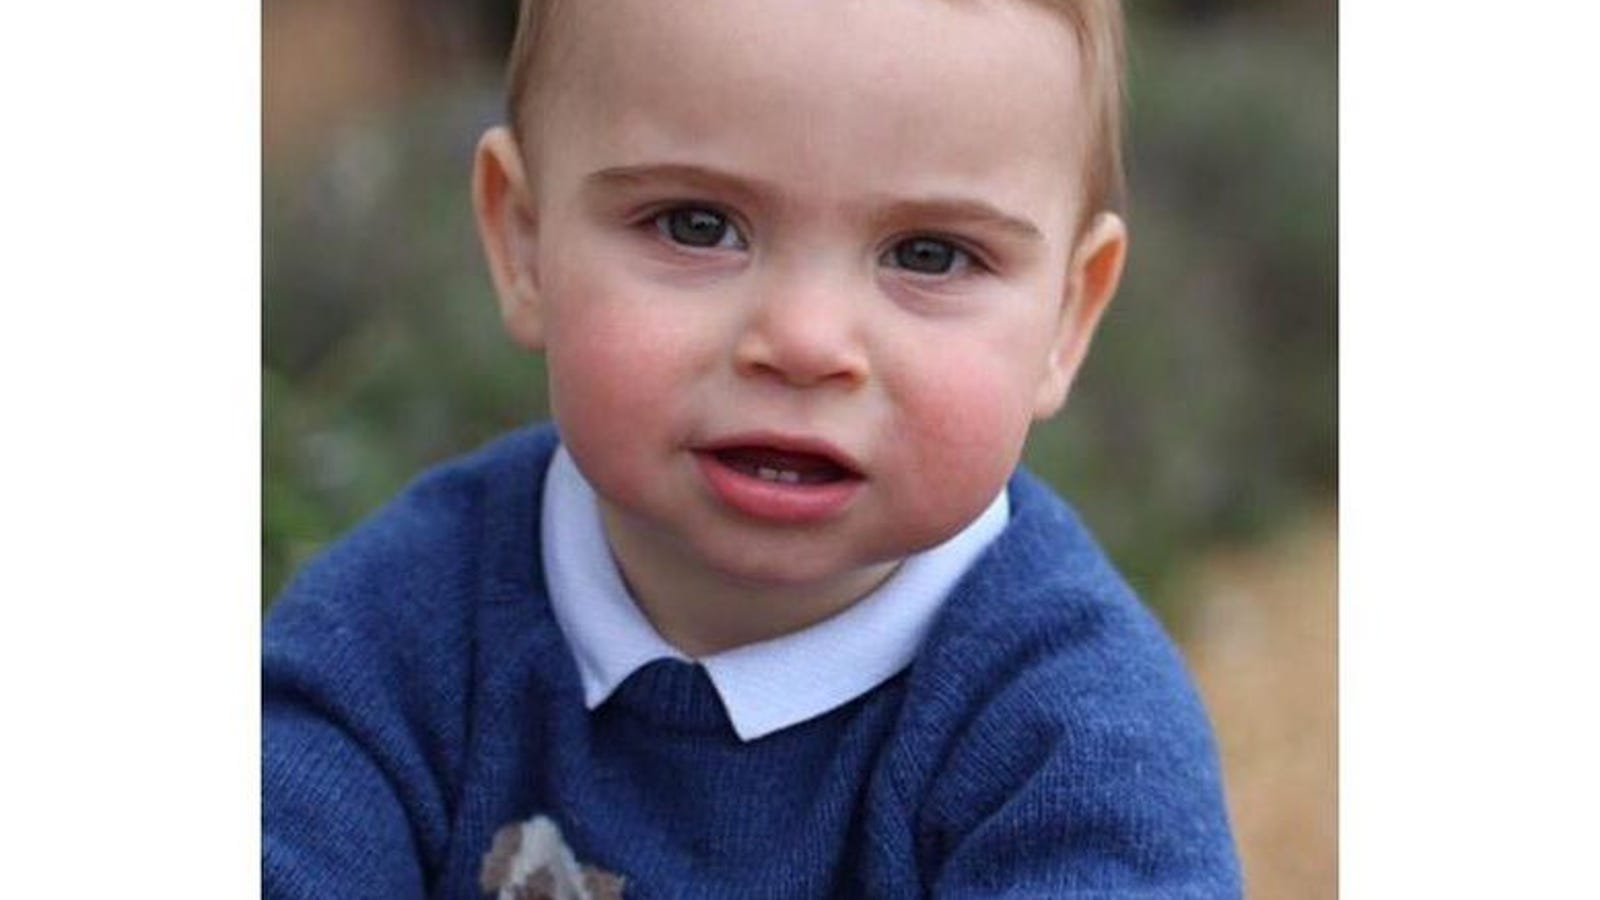 Enjoy These Photos of Young Prince Louis and His Sweaters